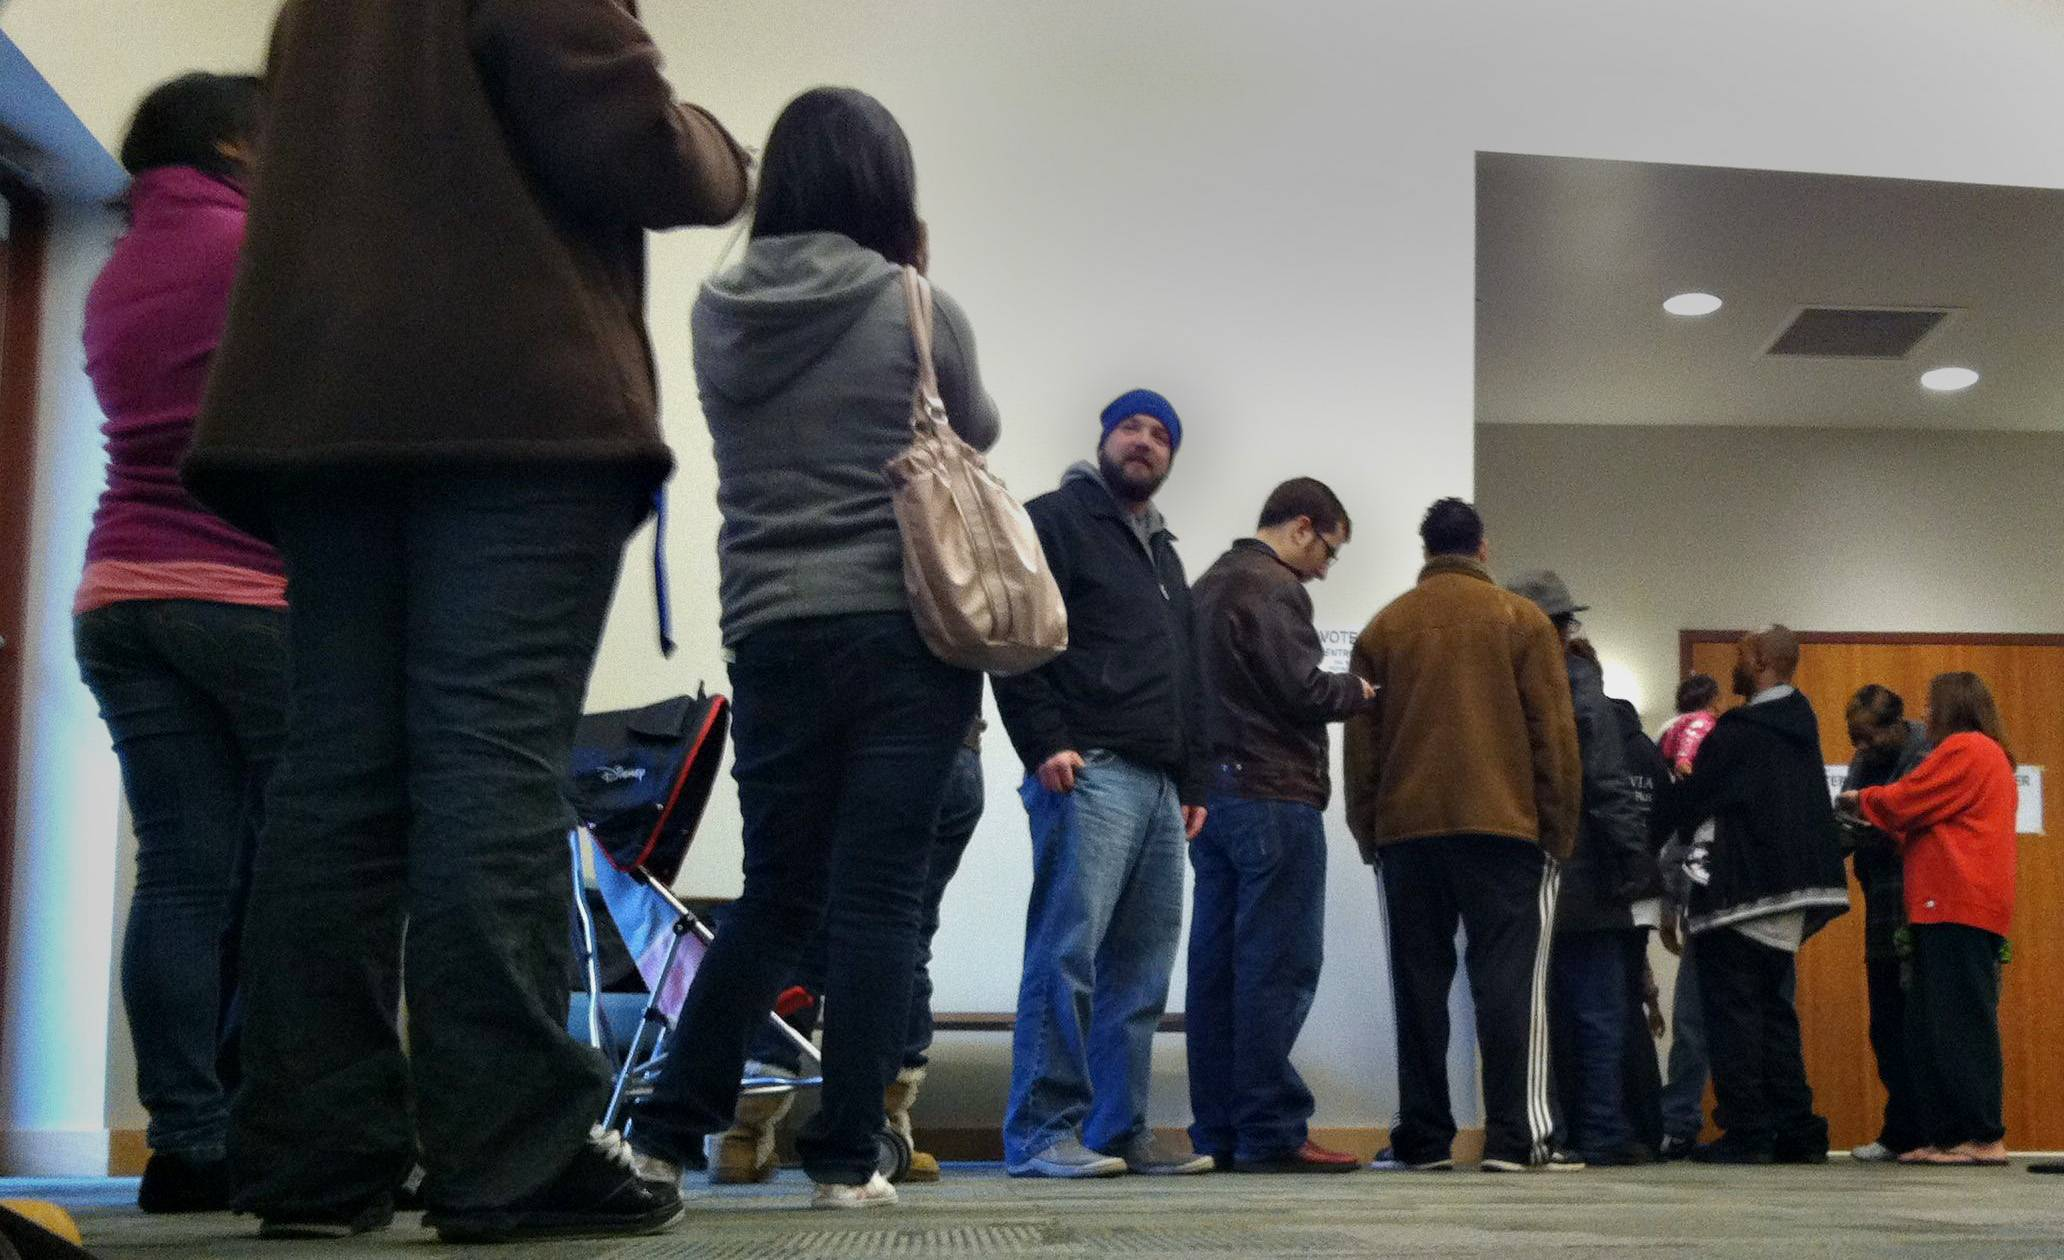 Early voting might mean short lines at the polls today